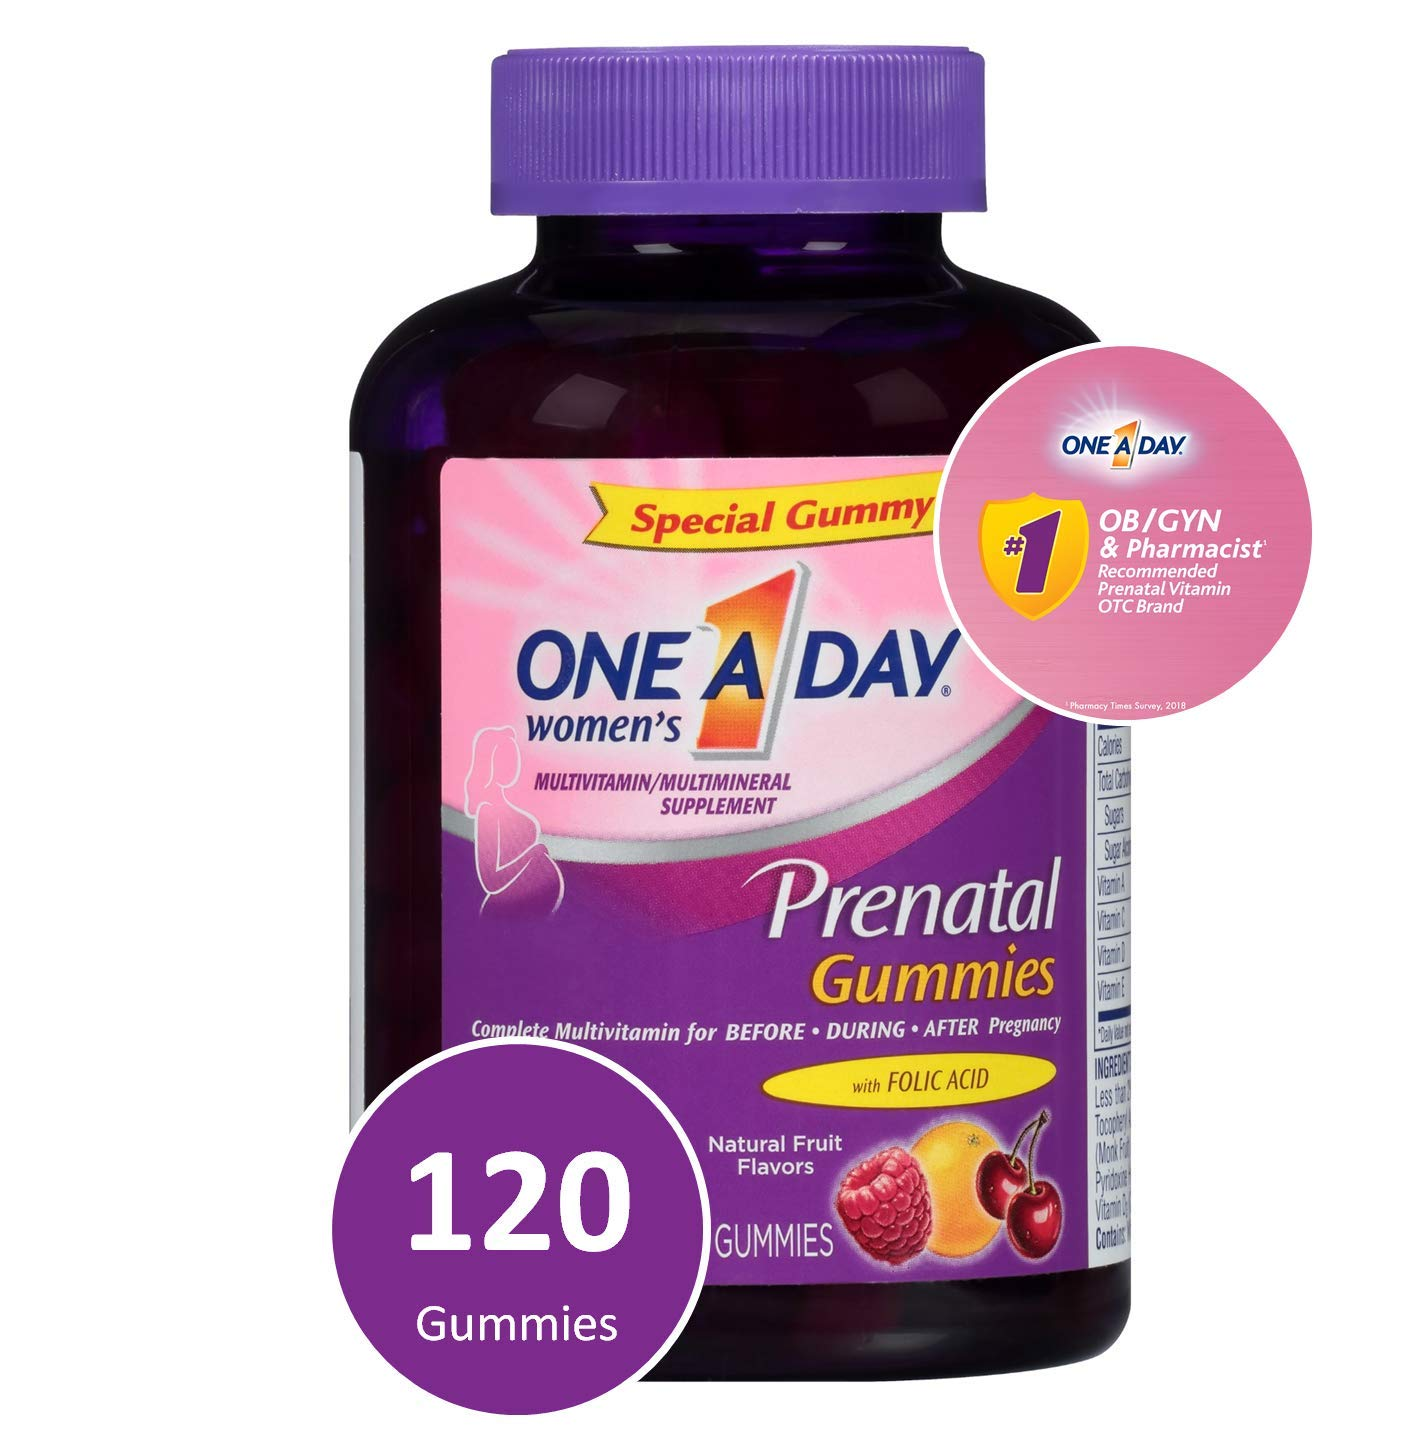 Top Prenatal Vitamins >> One A Day Women S Prenatal Multivitamin Gummies Supplement For Before And During Pregnancy Including Vitamins A C D E B6 B12 And Folic Acid